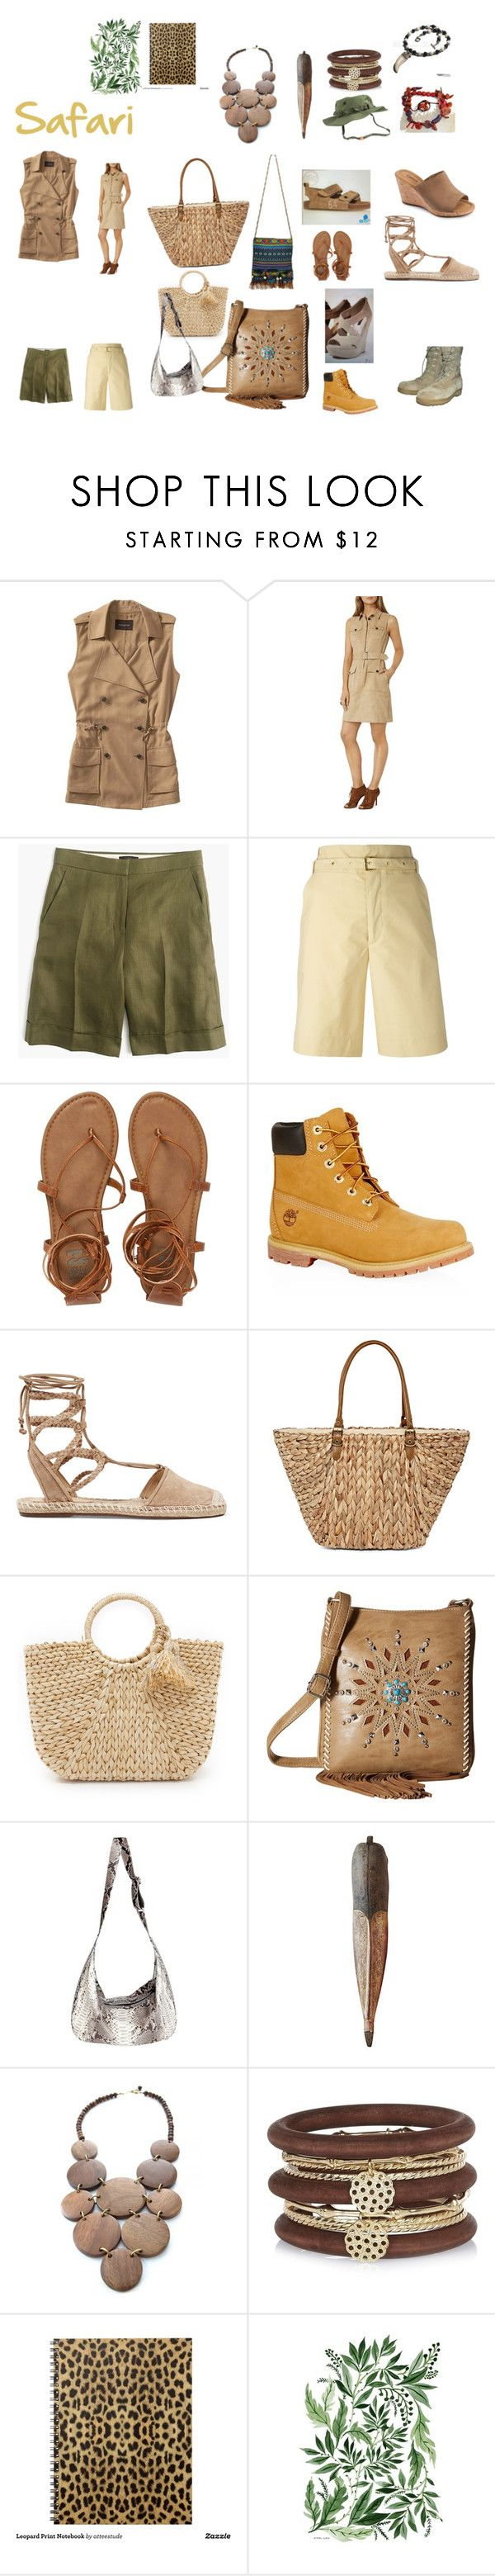 """Safari"" by silvia-av ❤ liked on Polyvore featuring Banana Republic, Karen Millen, J.Crew, Isabel Marant, Billabong, Timberland, Schutz, Straw Studios, Hat Attack and M&F Western"